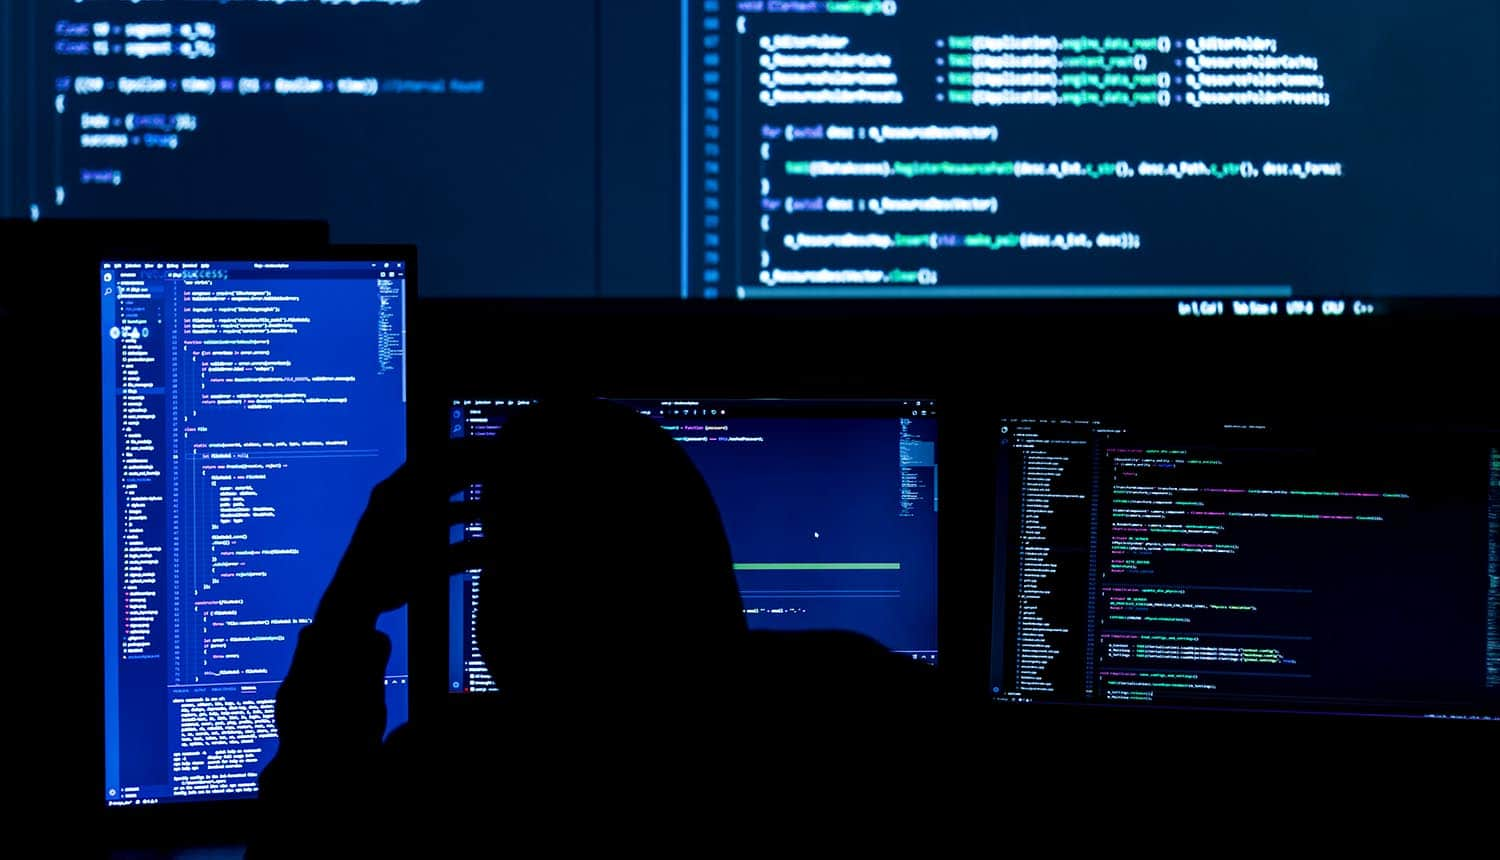 Software developer working on code showing issue with software security